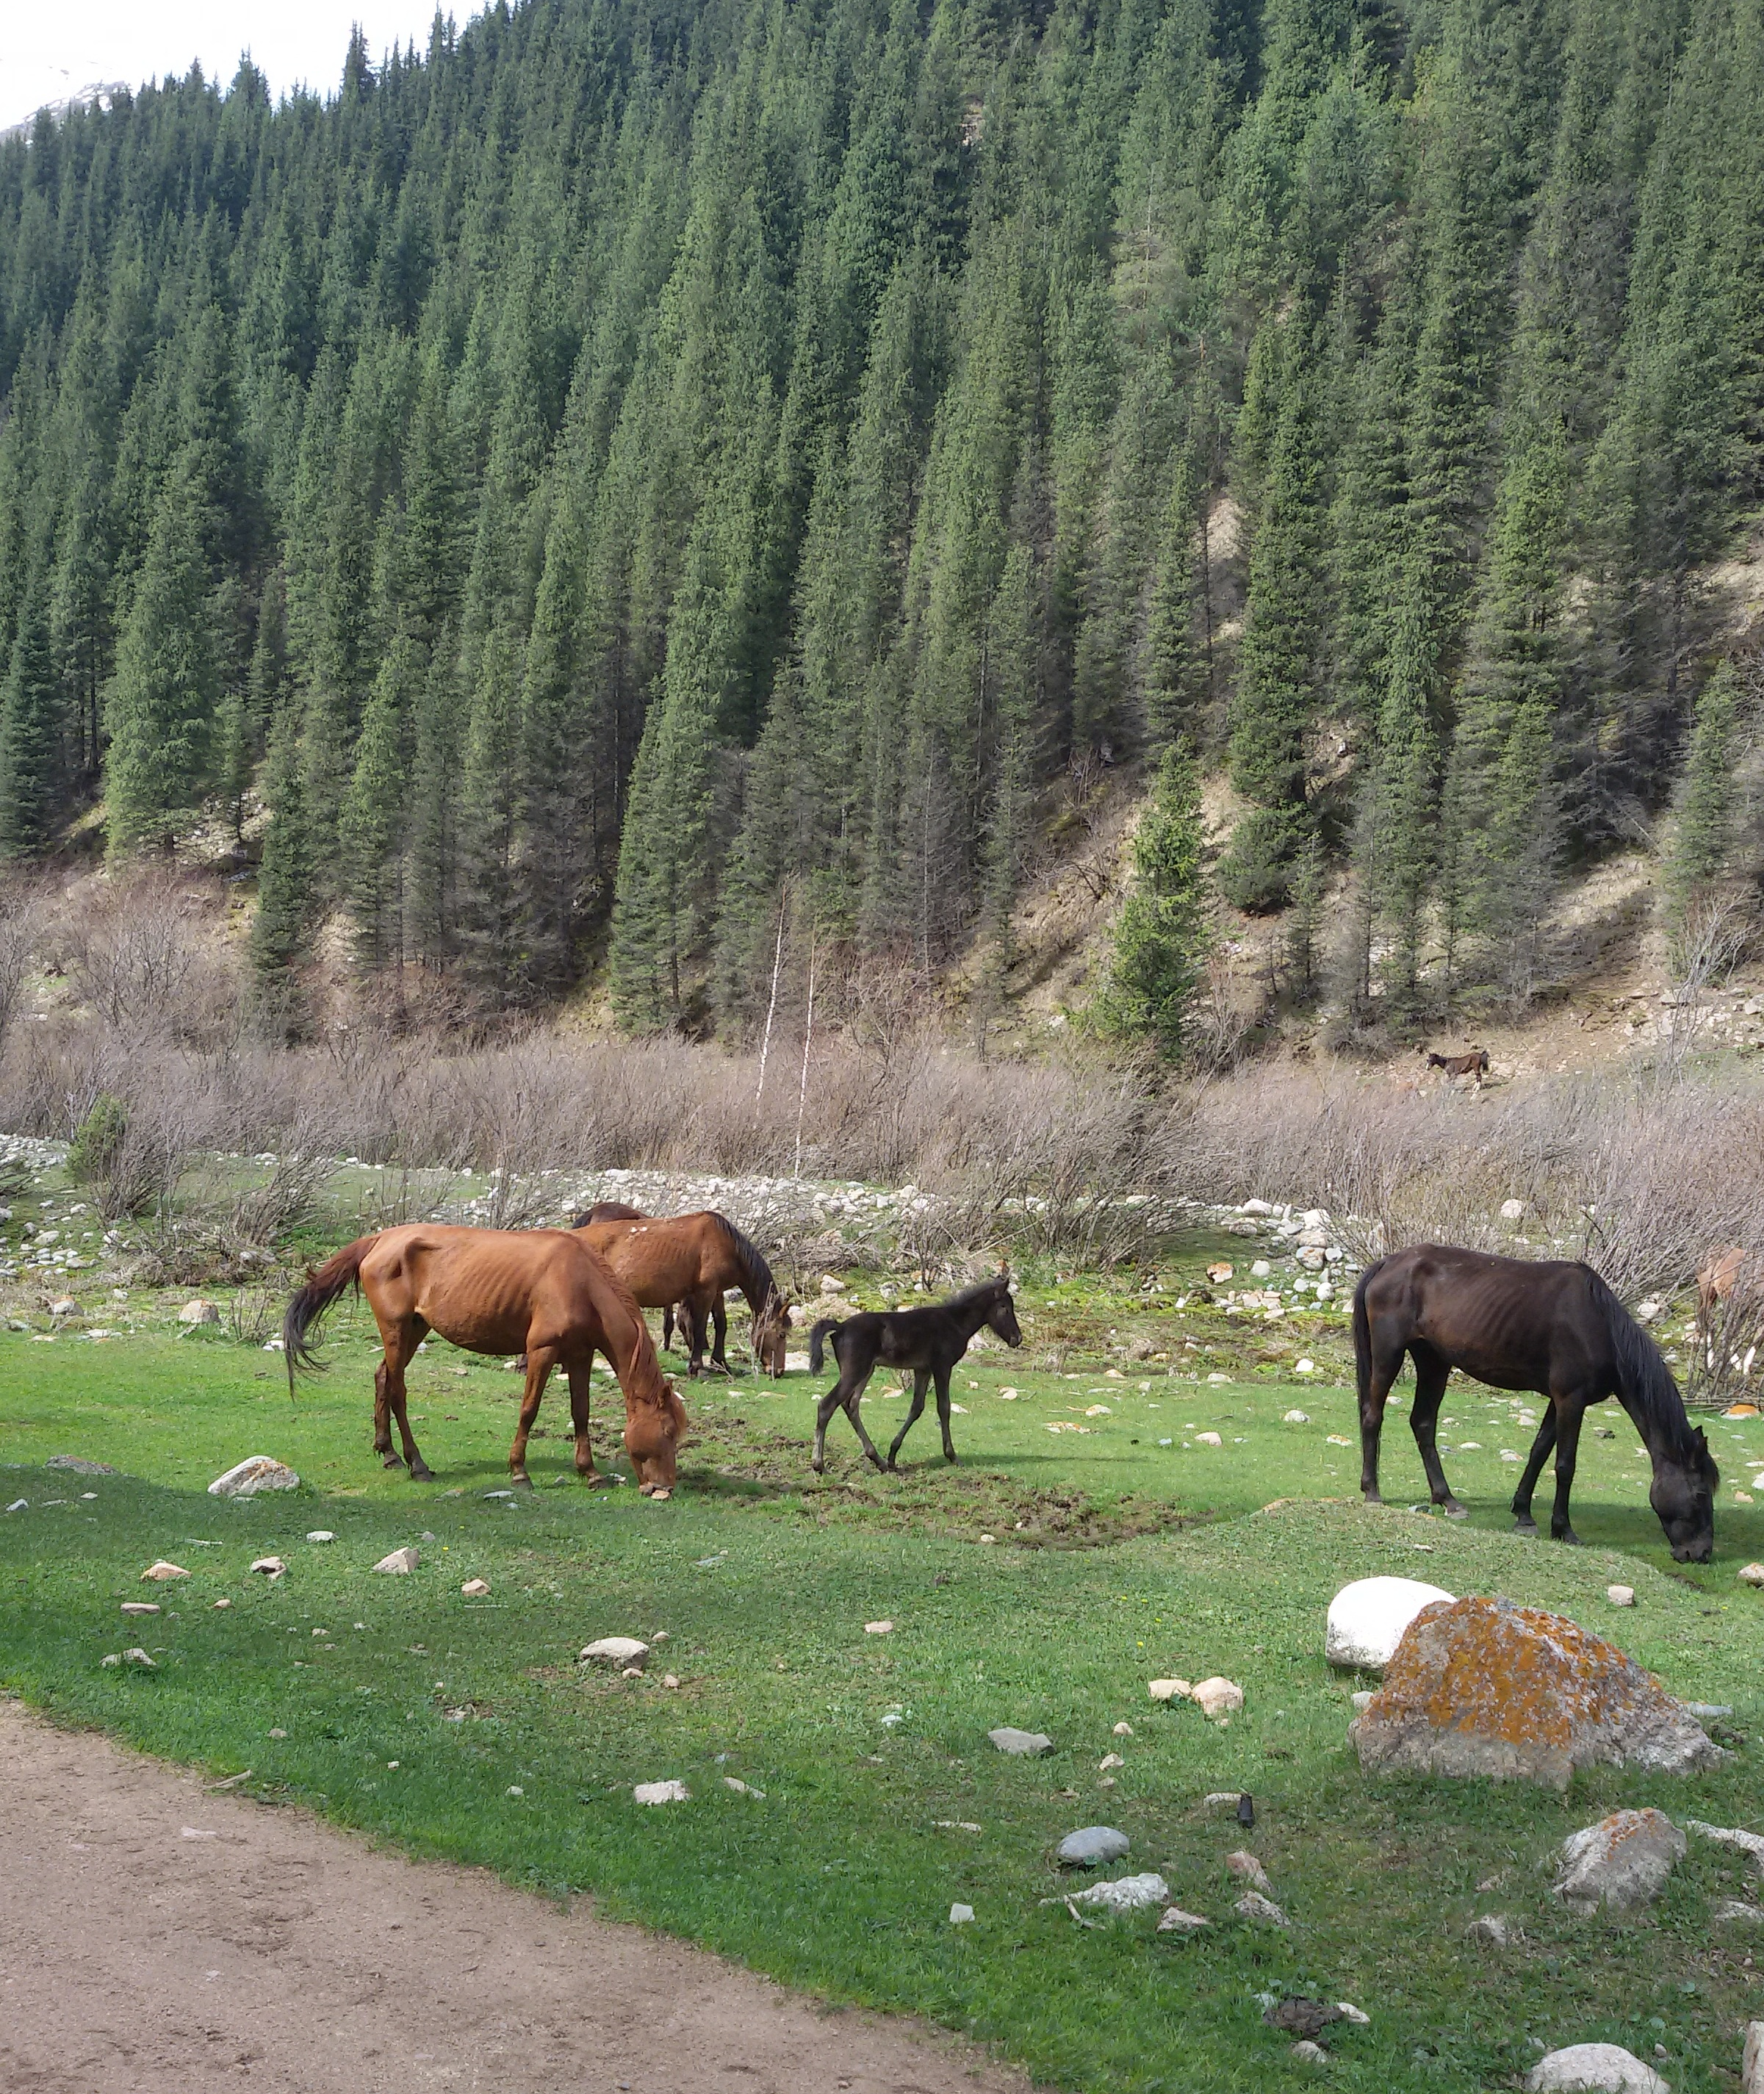 Horses at Chon Ak-Suu